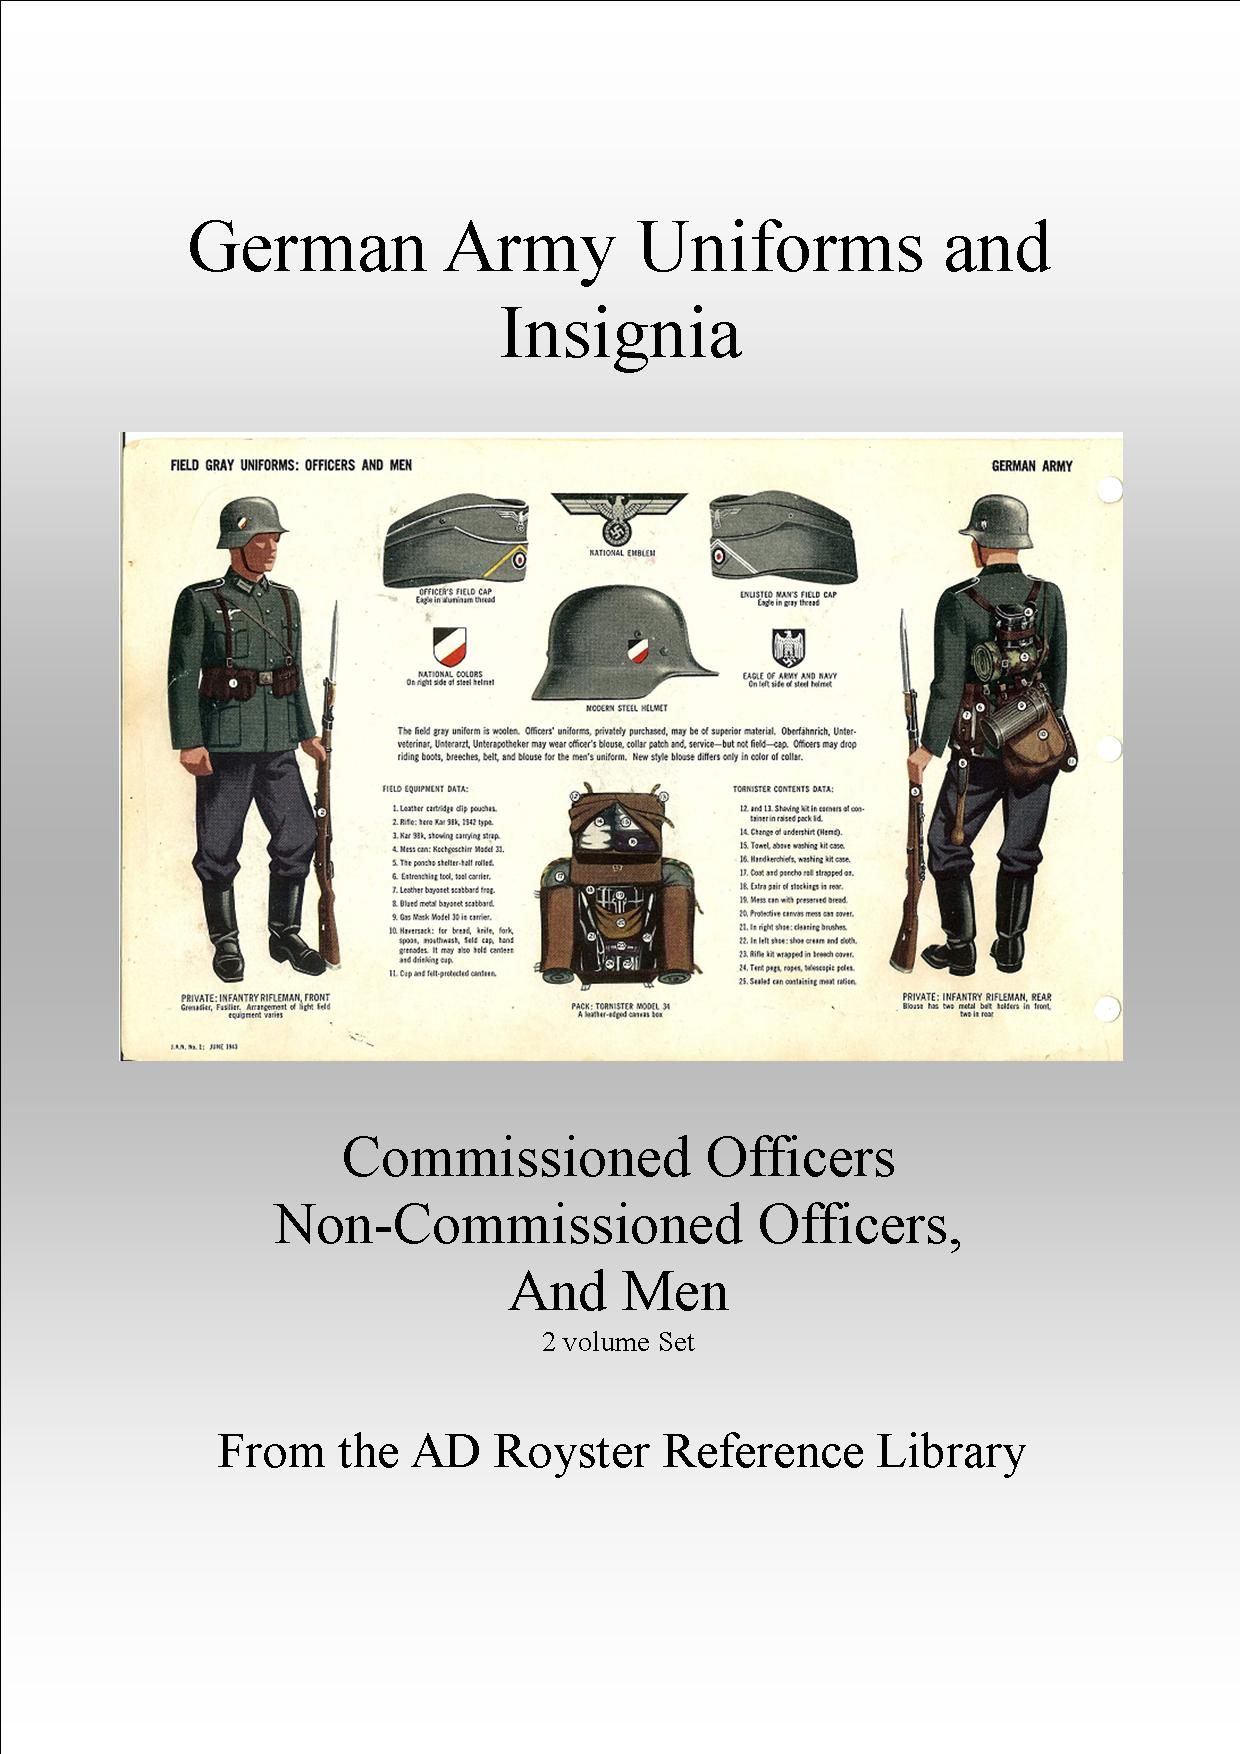 Army Uniforms Cover 1